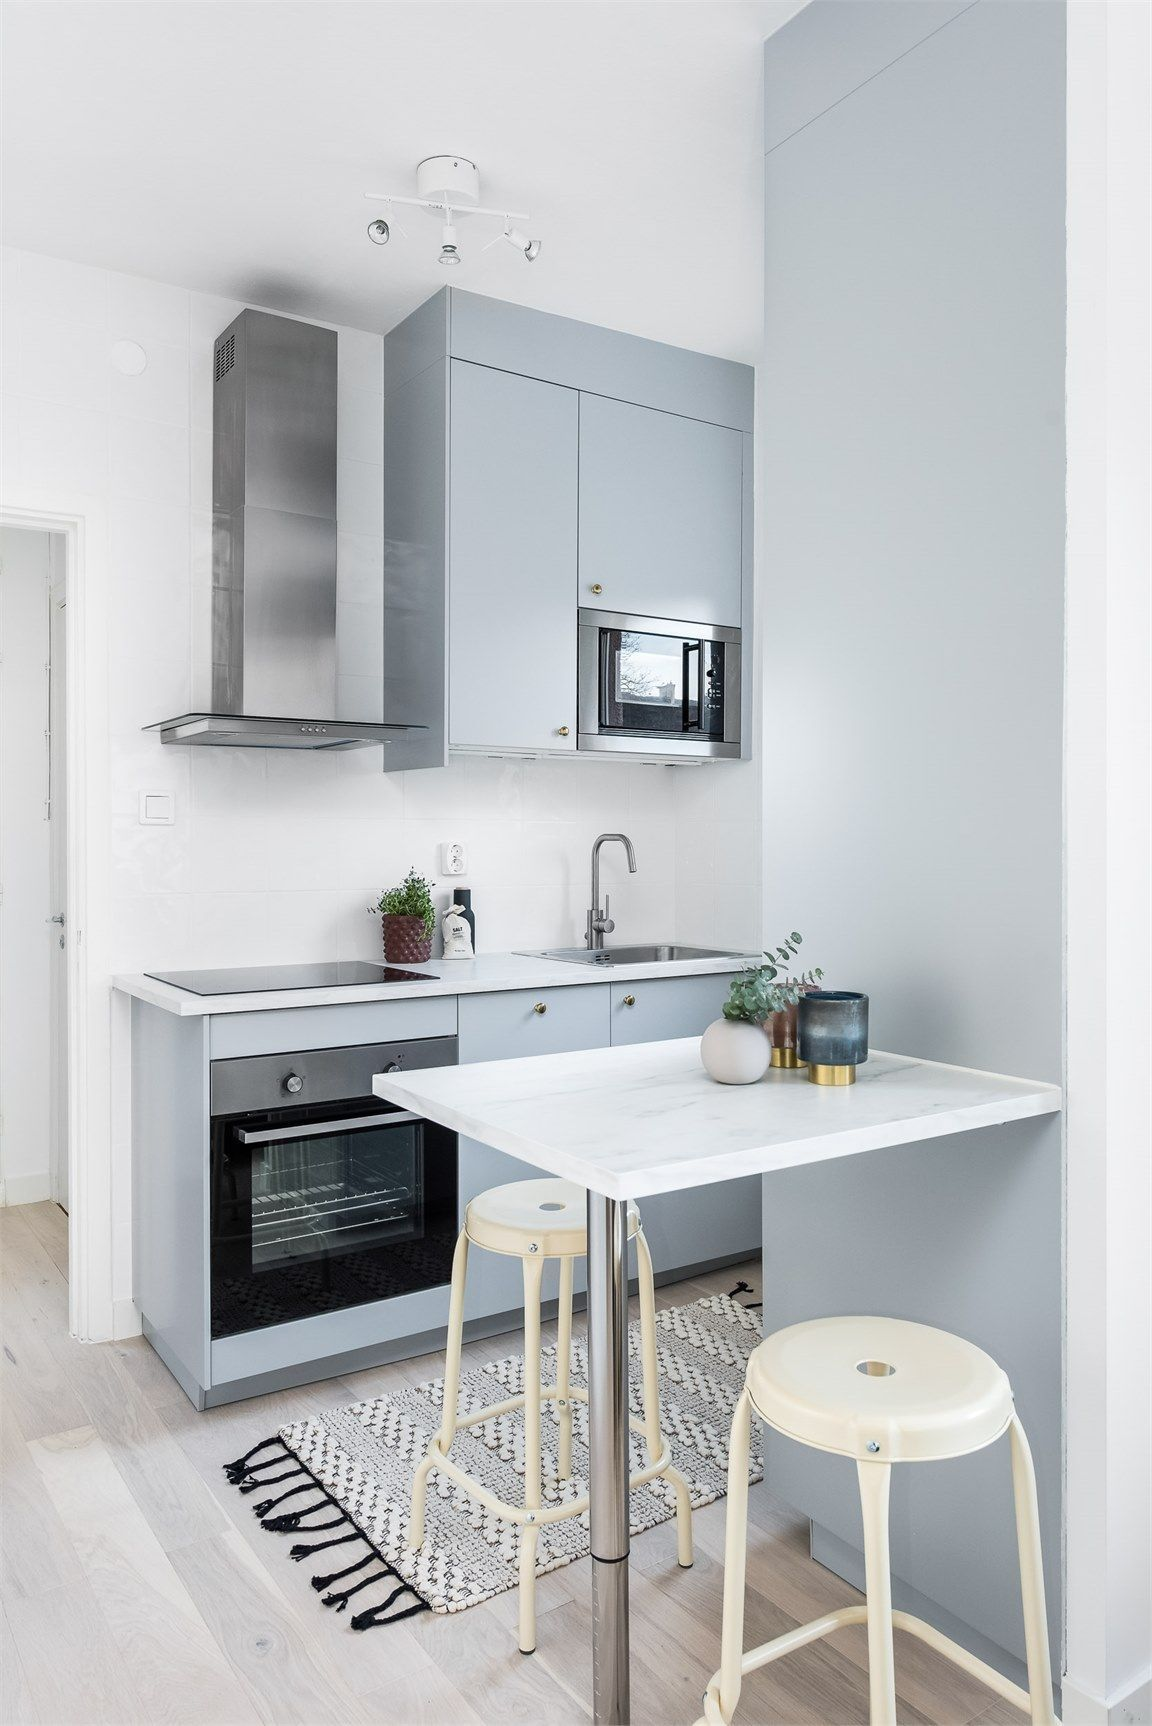 50 Splendid Small Kitchens And Ideas You Can Use From Them Small